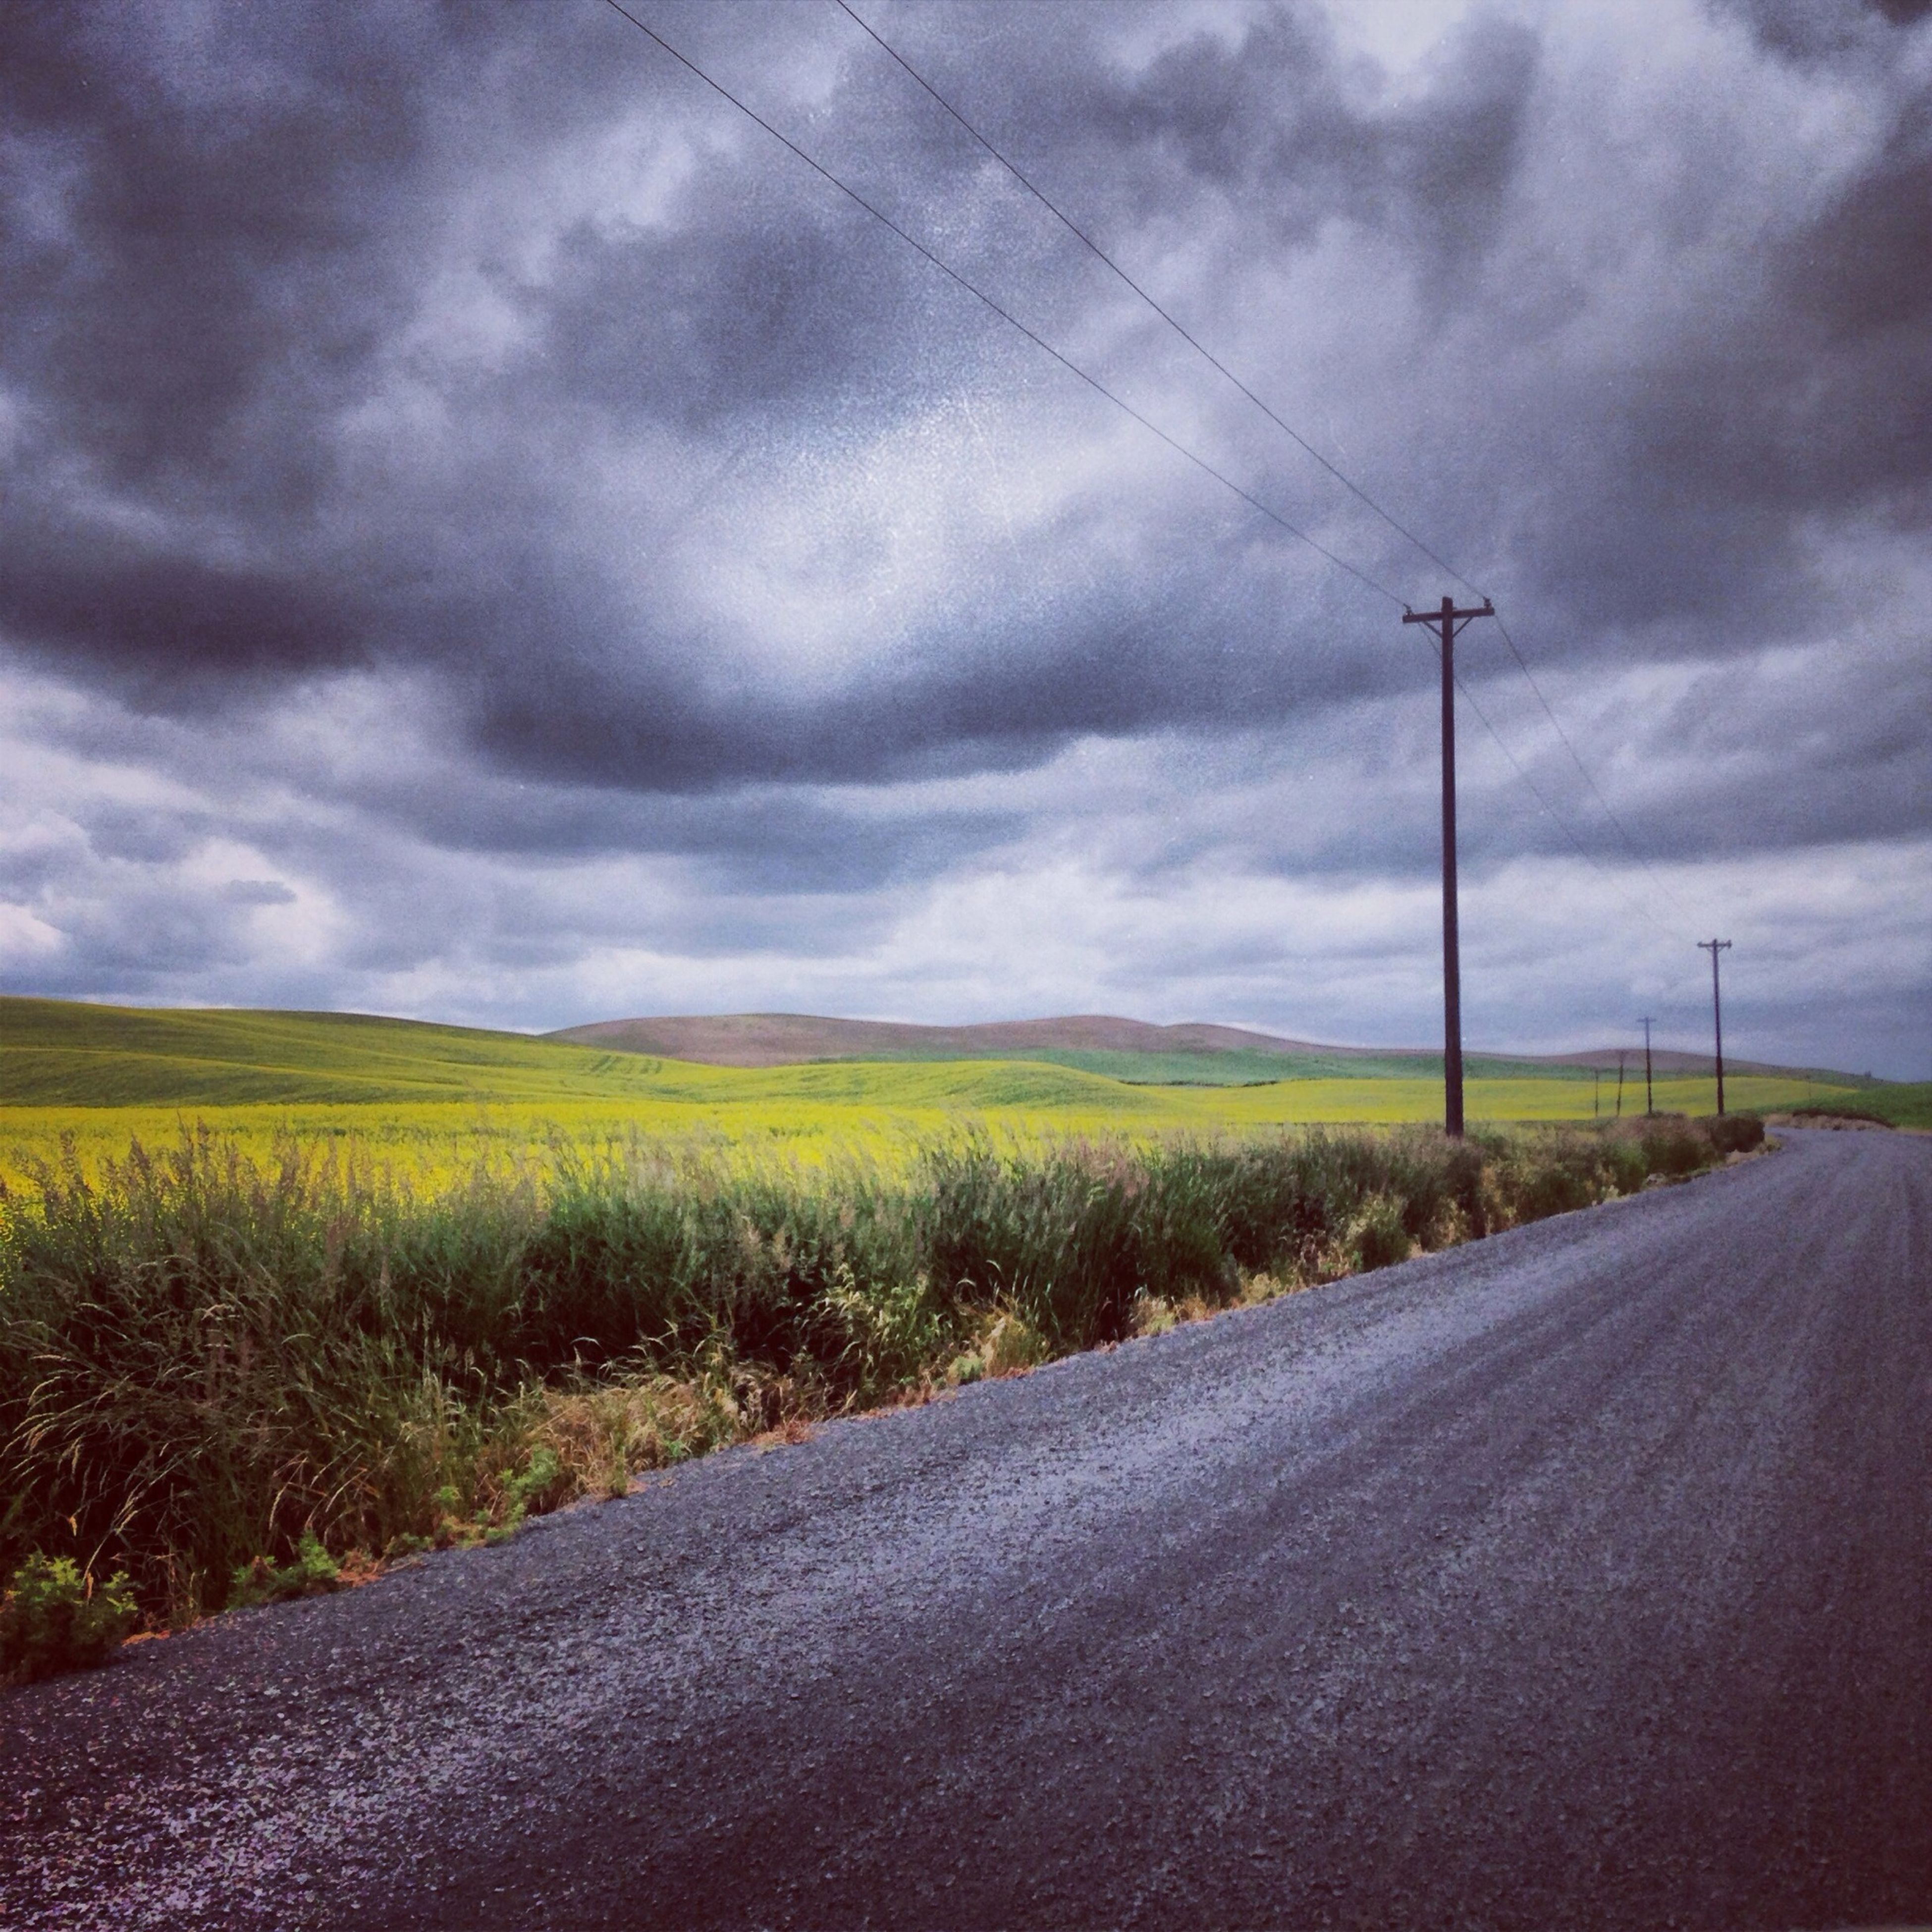 sky, road, the way forward, cloud - sky, transportation, cloudy, landscape, diminishing perspective, field, country road, road marking, cloud, tranquil scene, tranquility, vanishing point, nature, rural scene, grass, scenics, street